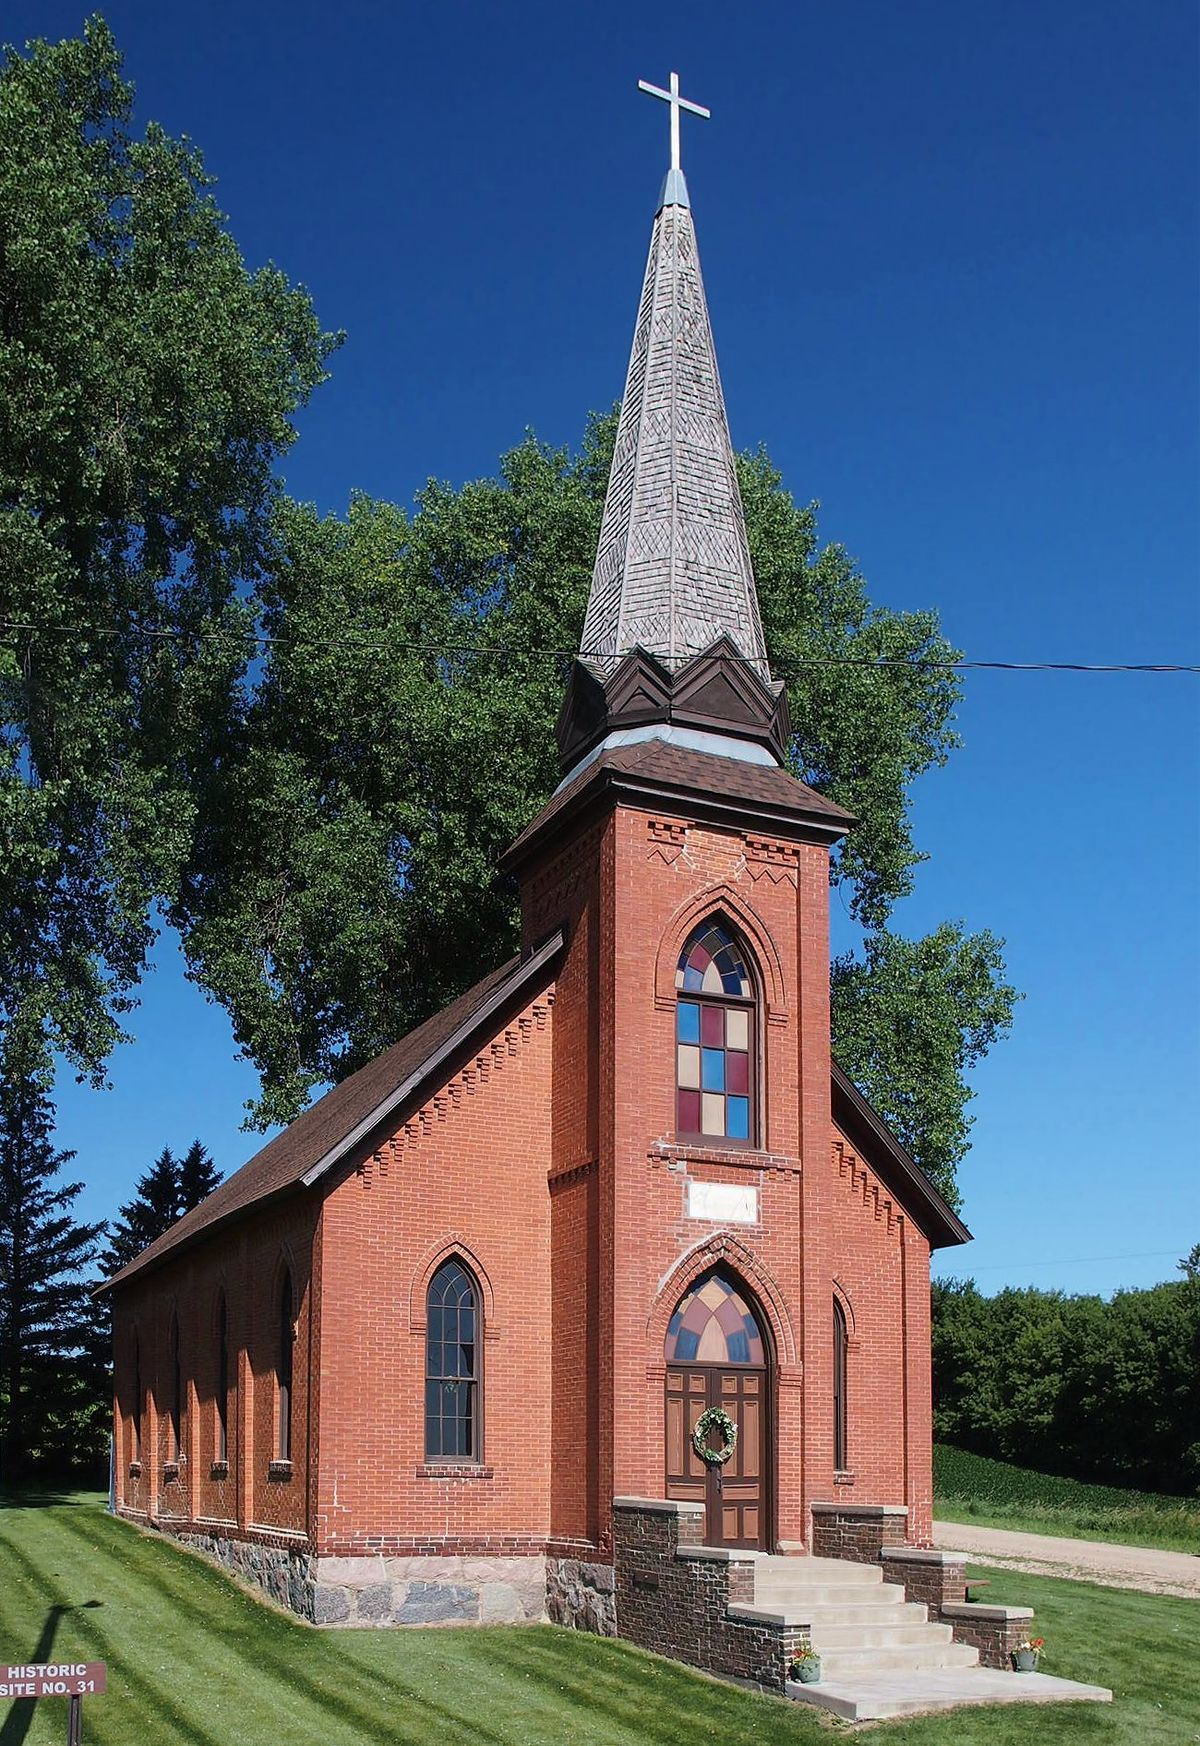 lutheran church marysville swedesburg minnesota county churches wright historic cathedral wikipedia cathedrals worship